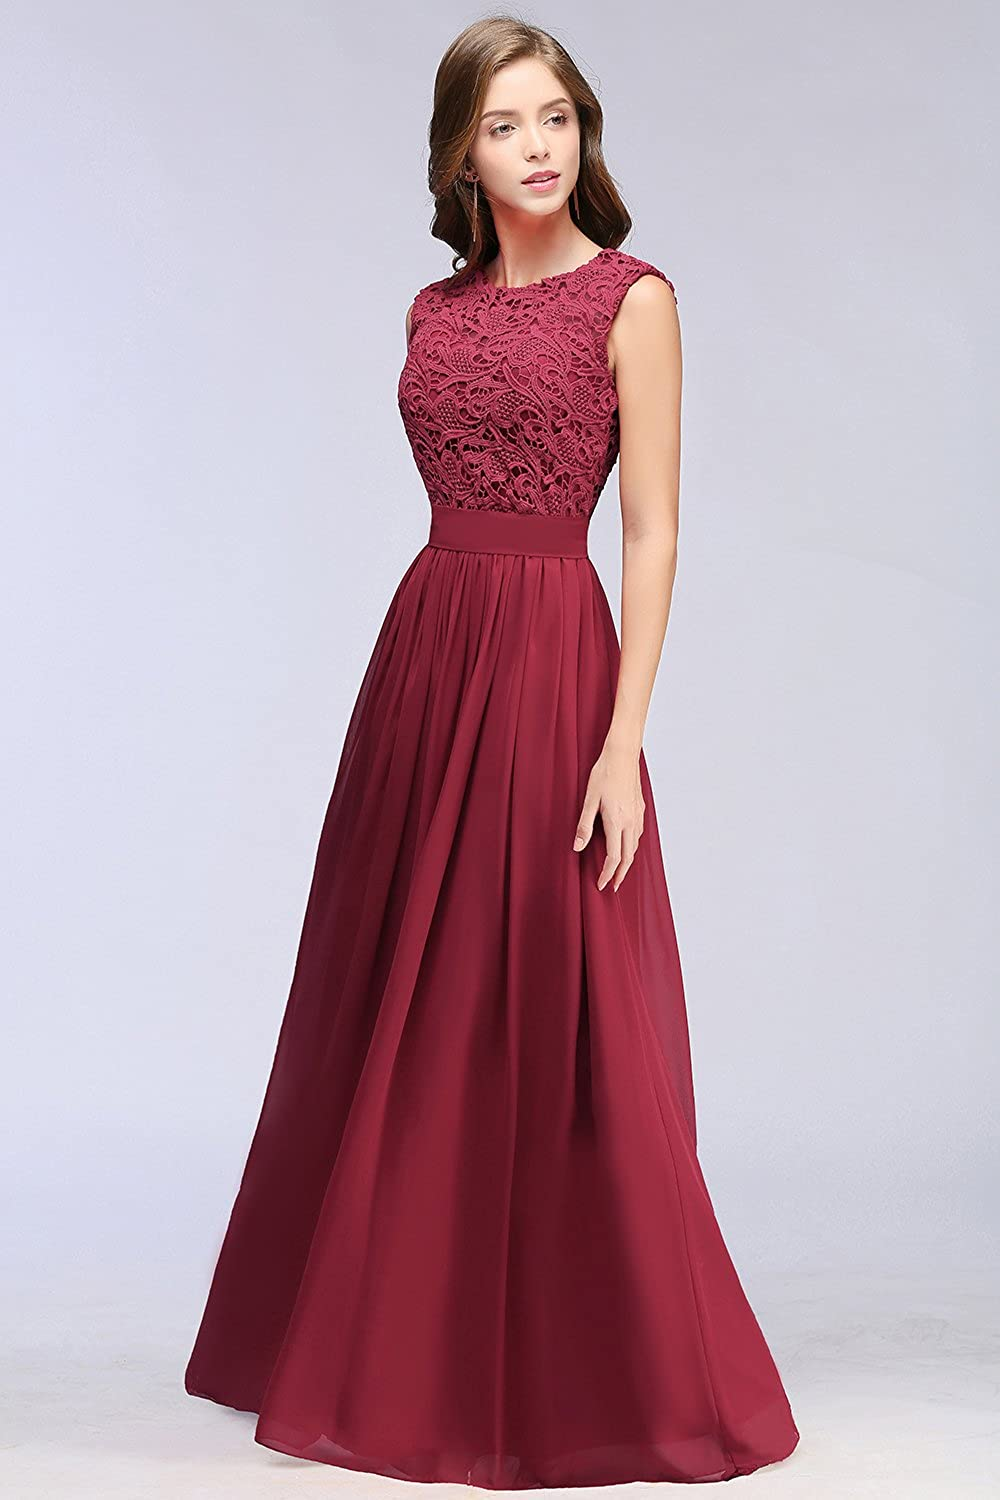 9dd1392034 MisShow Lace Chiffon Bridesmaid Dresses Long Prom Evening Gowns for Womem  at Amazon Women s Clothing store